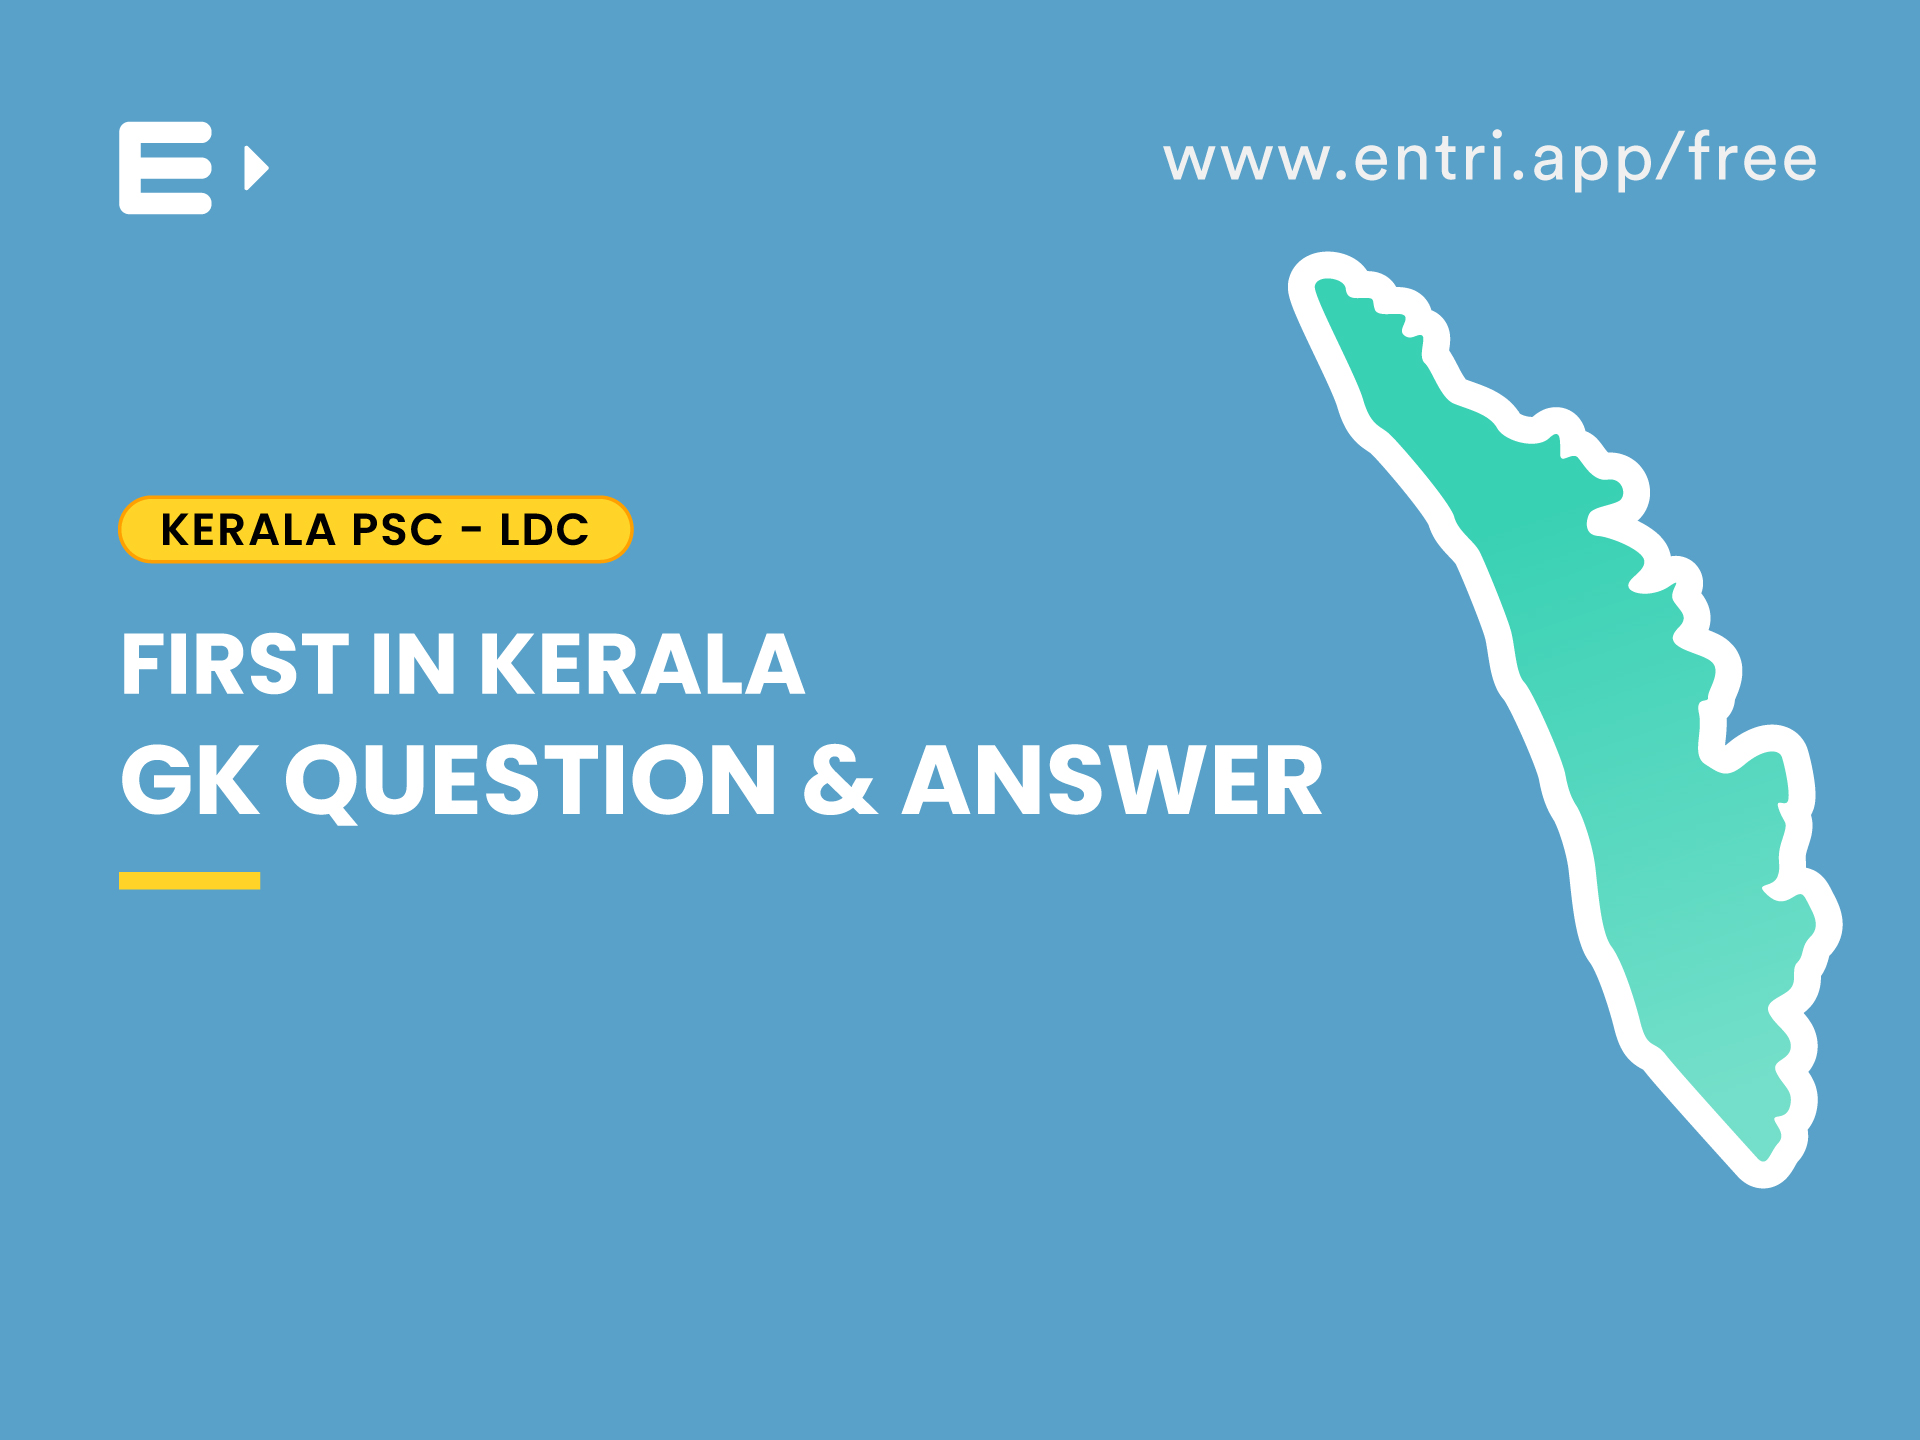 First in Kerala-GK Question and Answer for Kerala PSC Exams